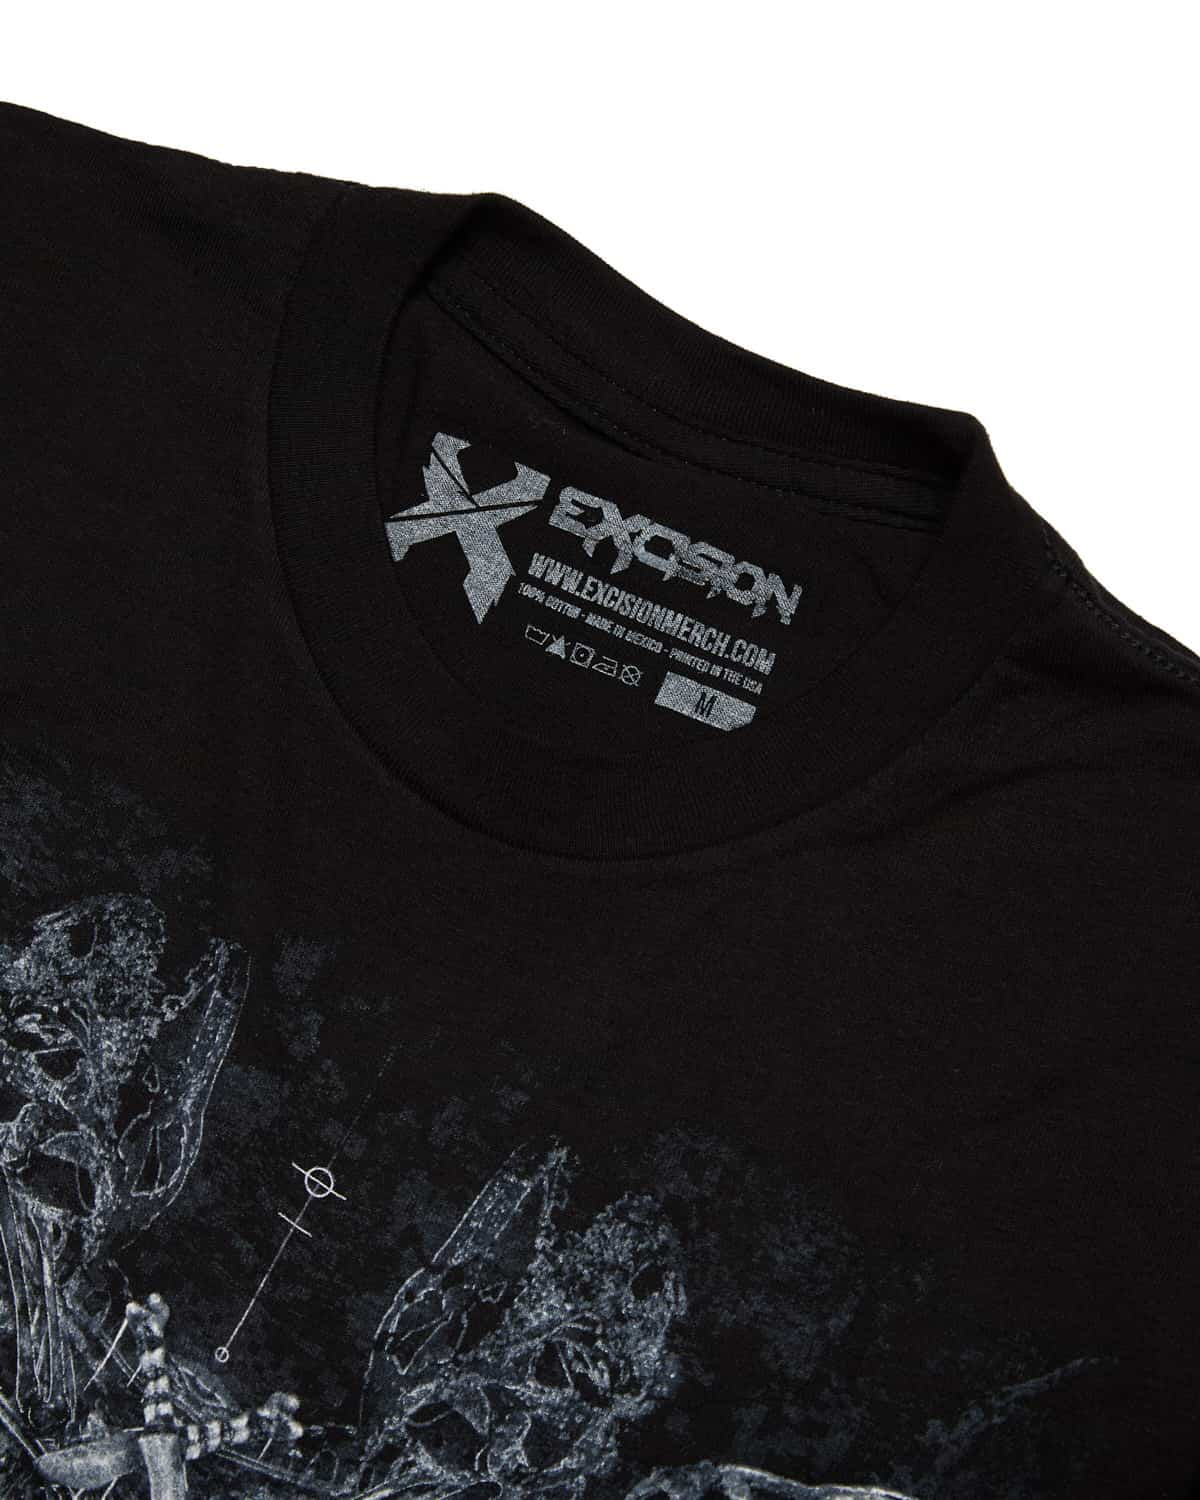 Excision 'Petrified' Unisex T-Shirt - Black/White